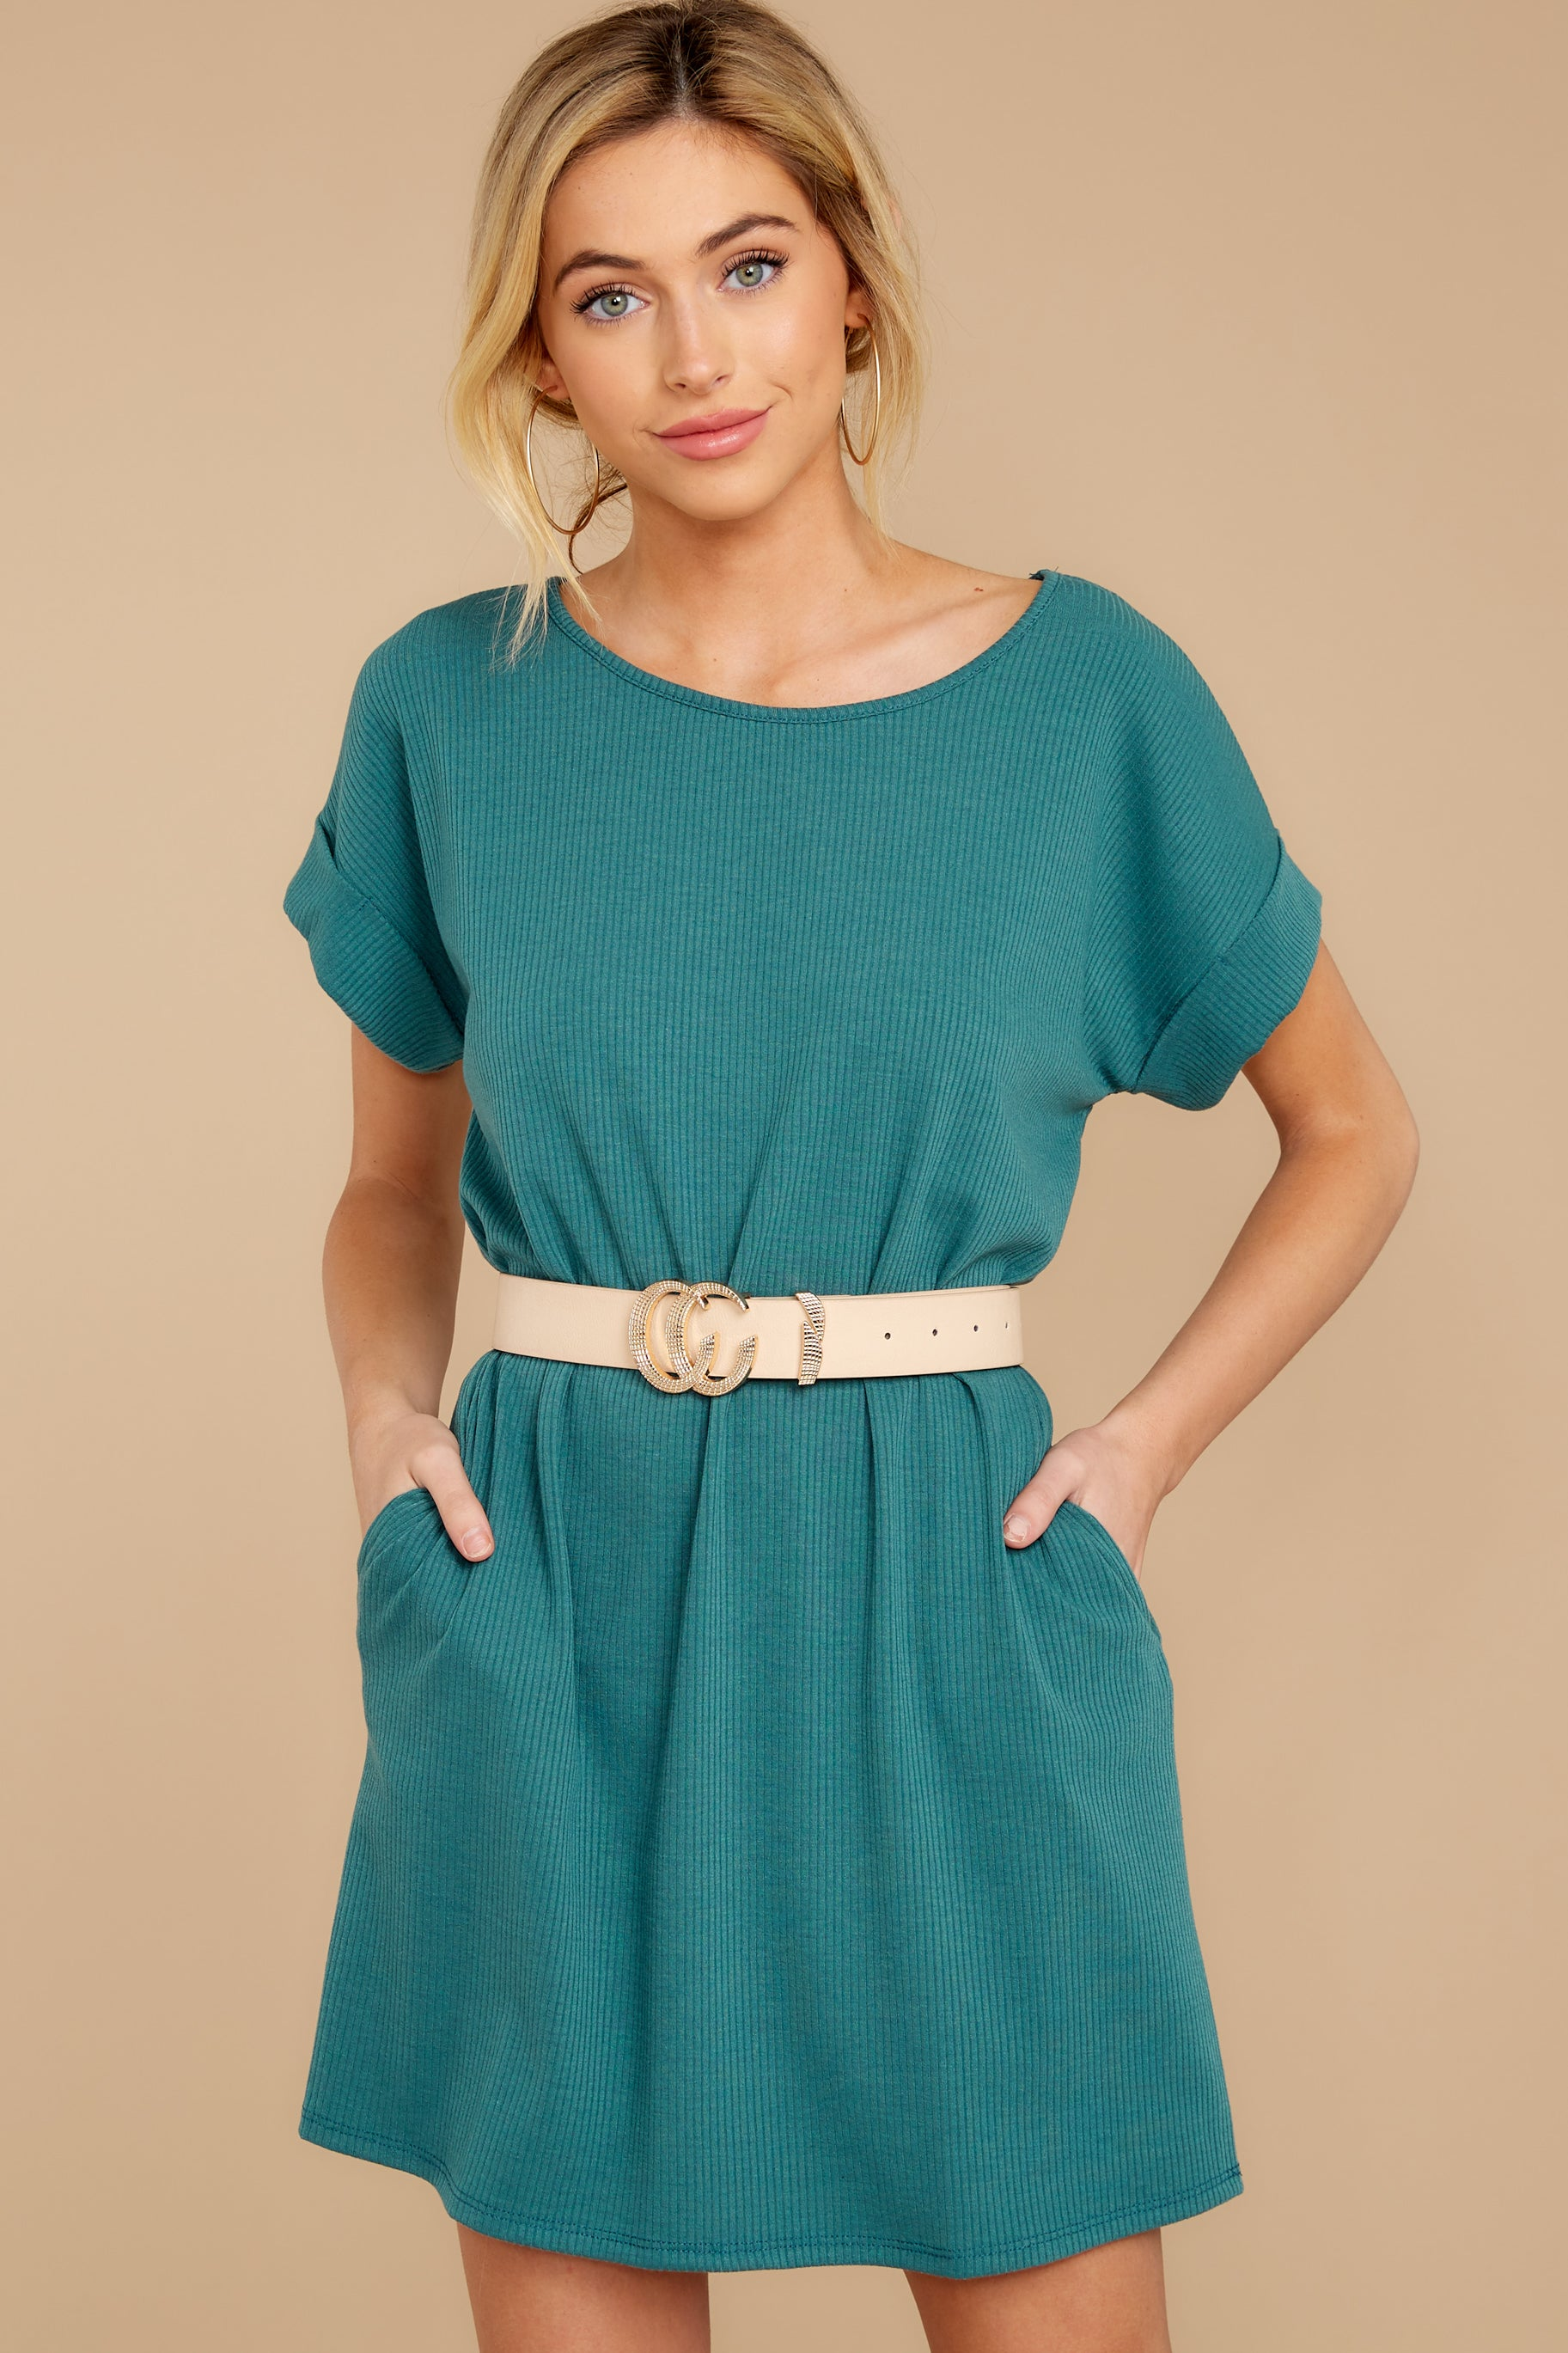 4 Anywhere She Goes Jade Green Dress at reddress.com